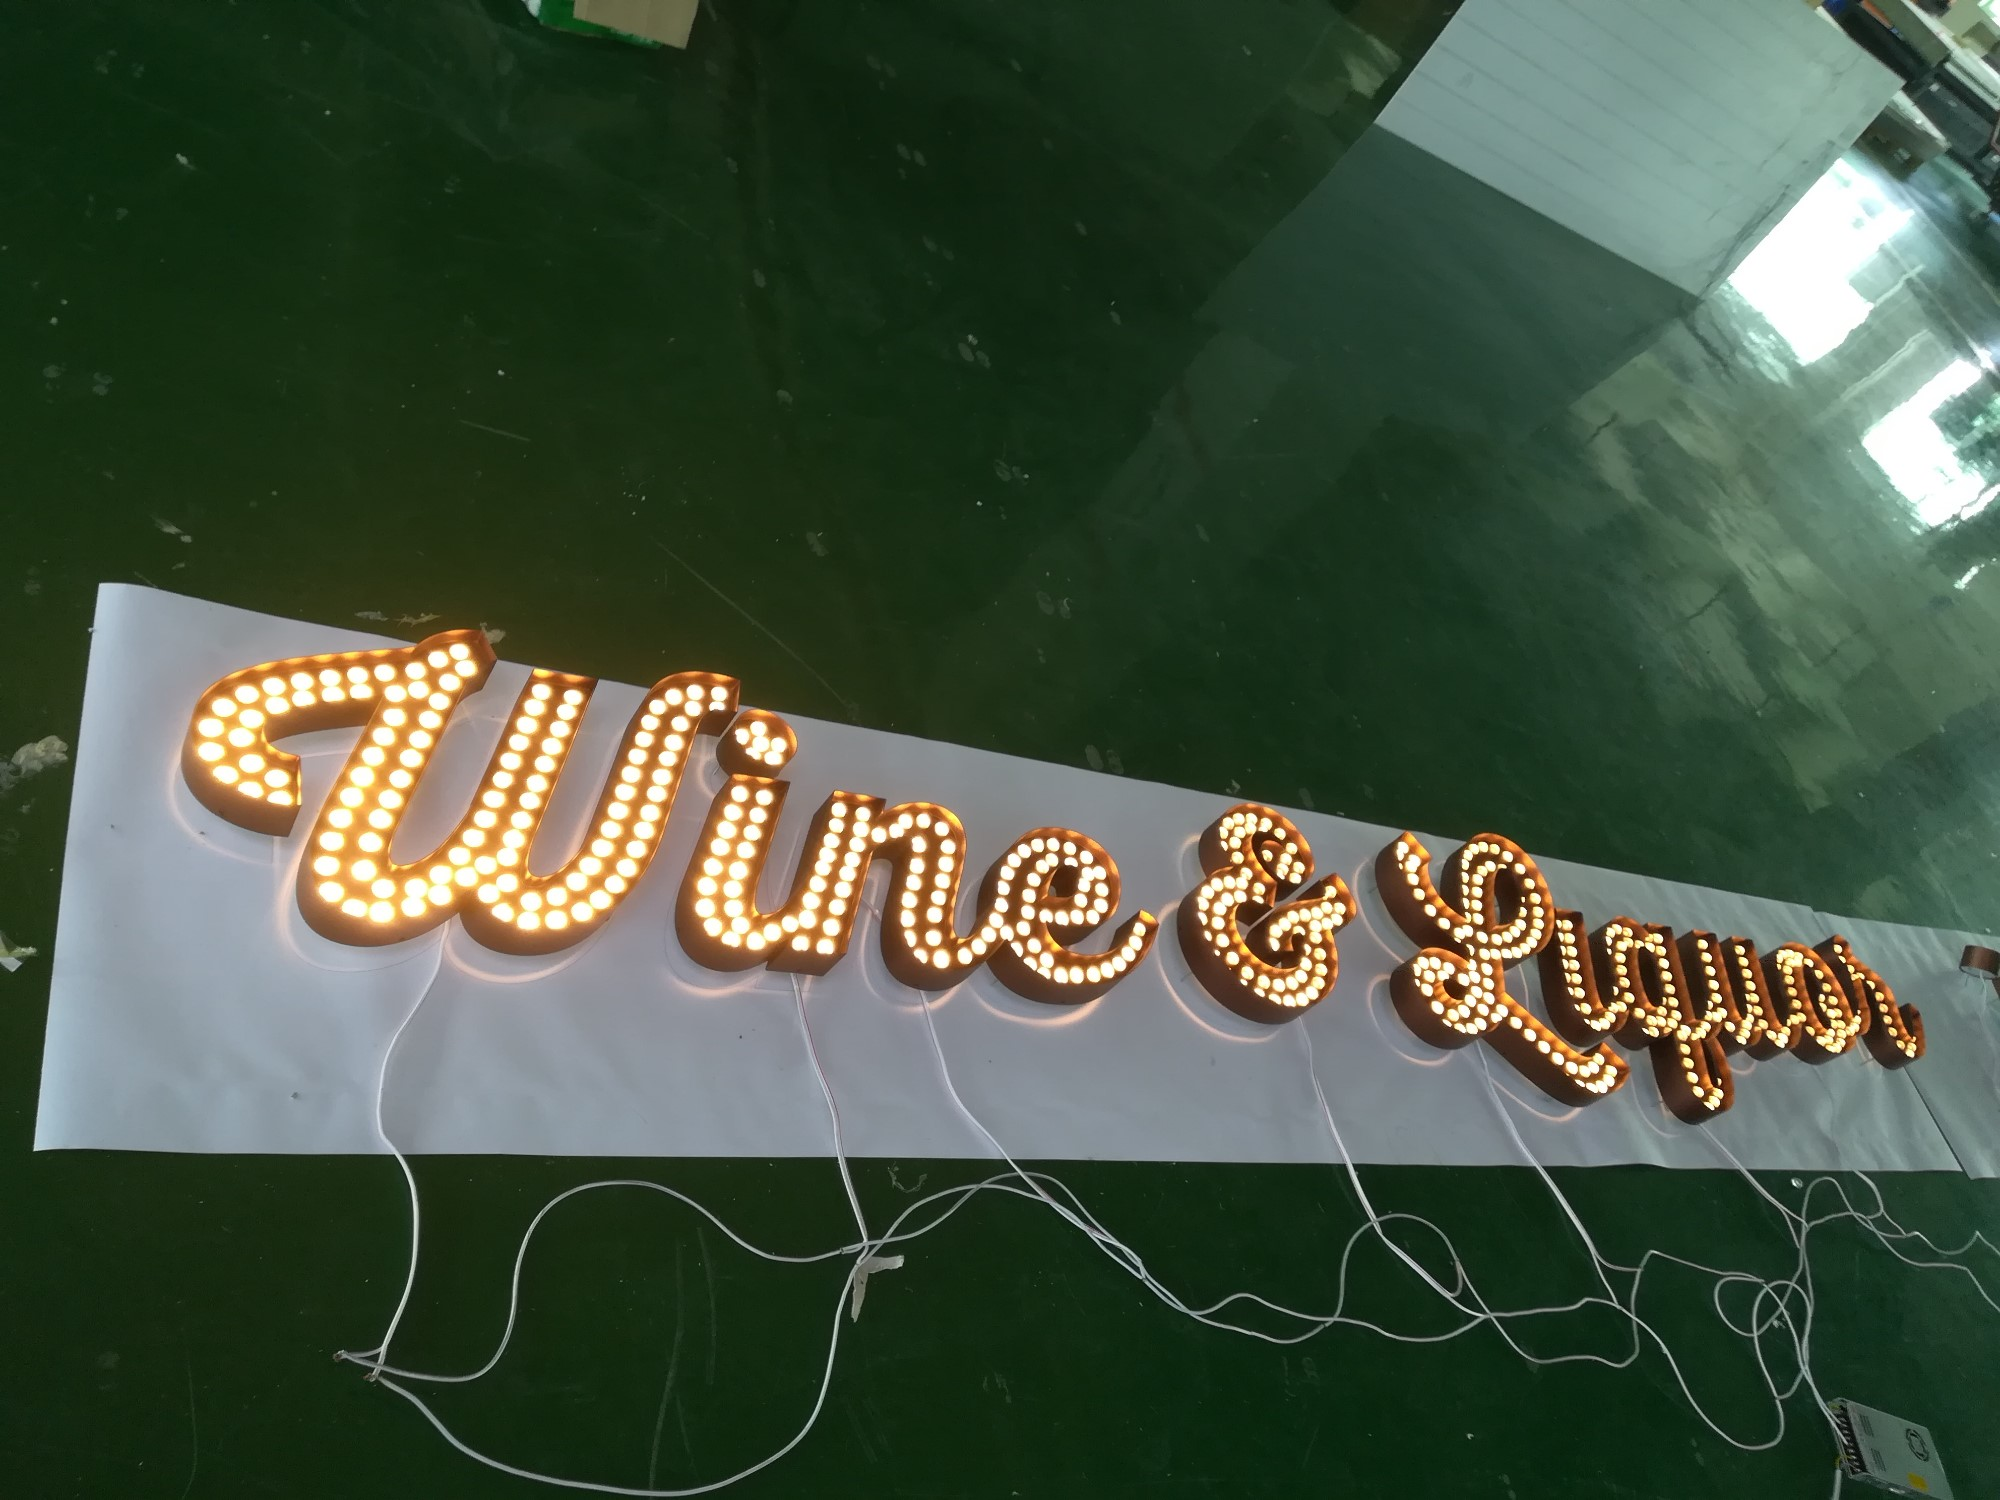 Led Bulb Marquee Letter Sign For Indoor Decoration Manufacturers, Led Bulb Marquee Letter Sign For Indoor Decoration Factory, Supply Led Bulb Marquee Letter Sign For Indoor Decoration